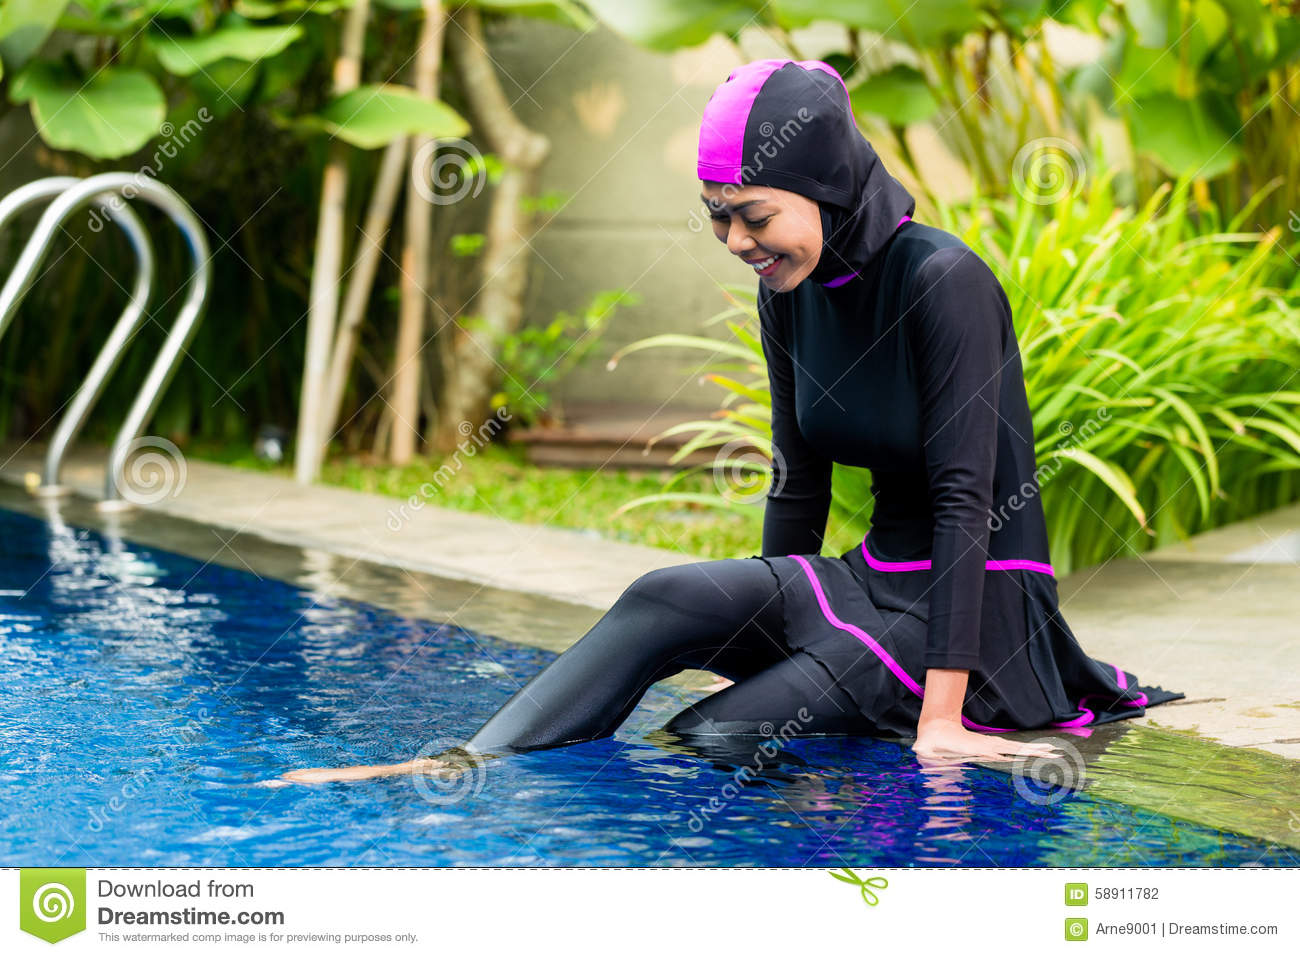 garden muslim girl personals Dating in islam: why muslims shouldn't date and why you shouldn't i started dating a muslim as a muslim girl i would advise you not to meet the boy in.